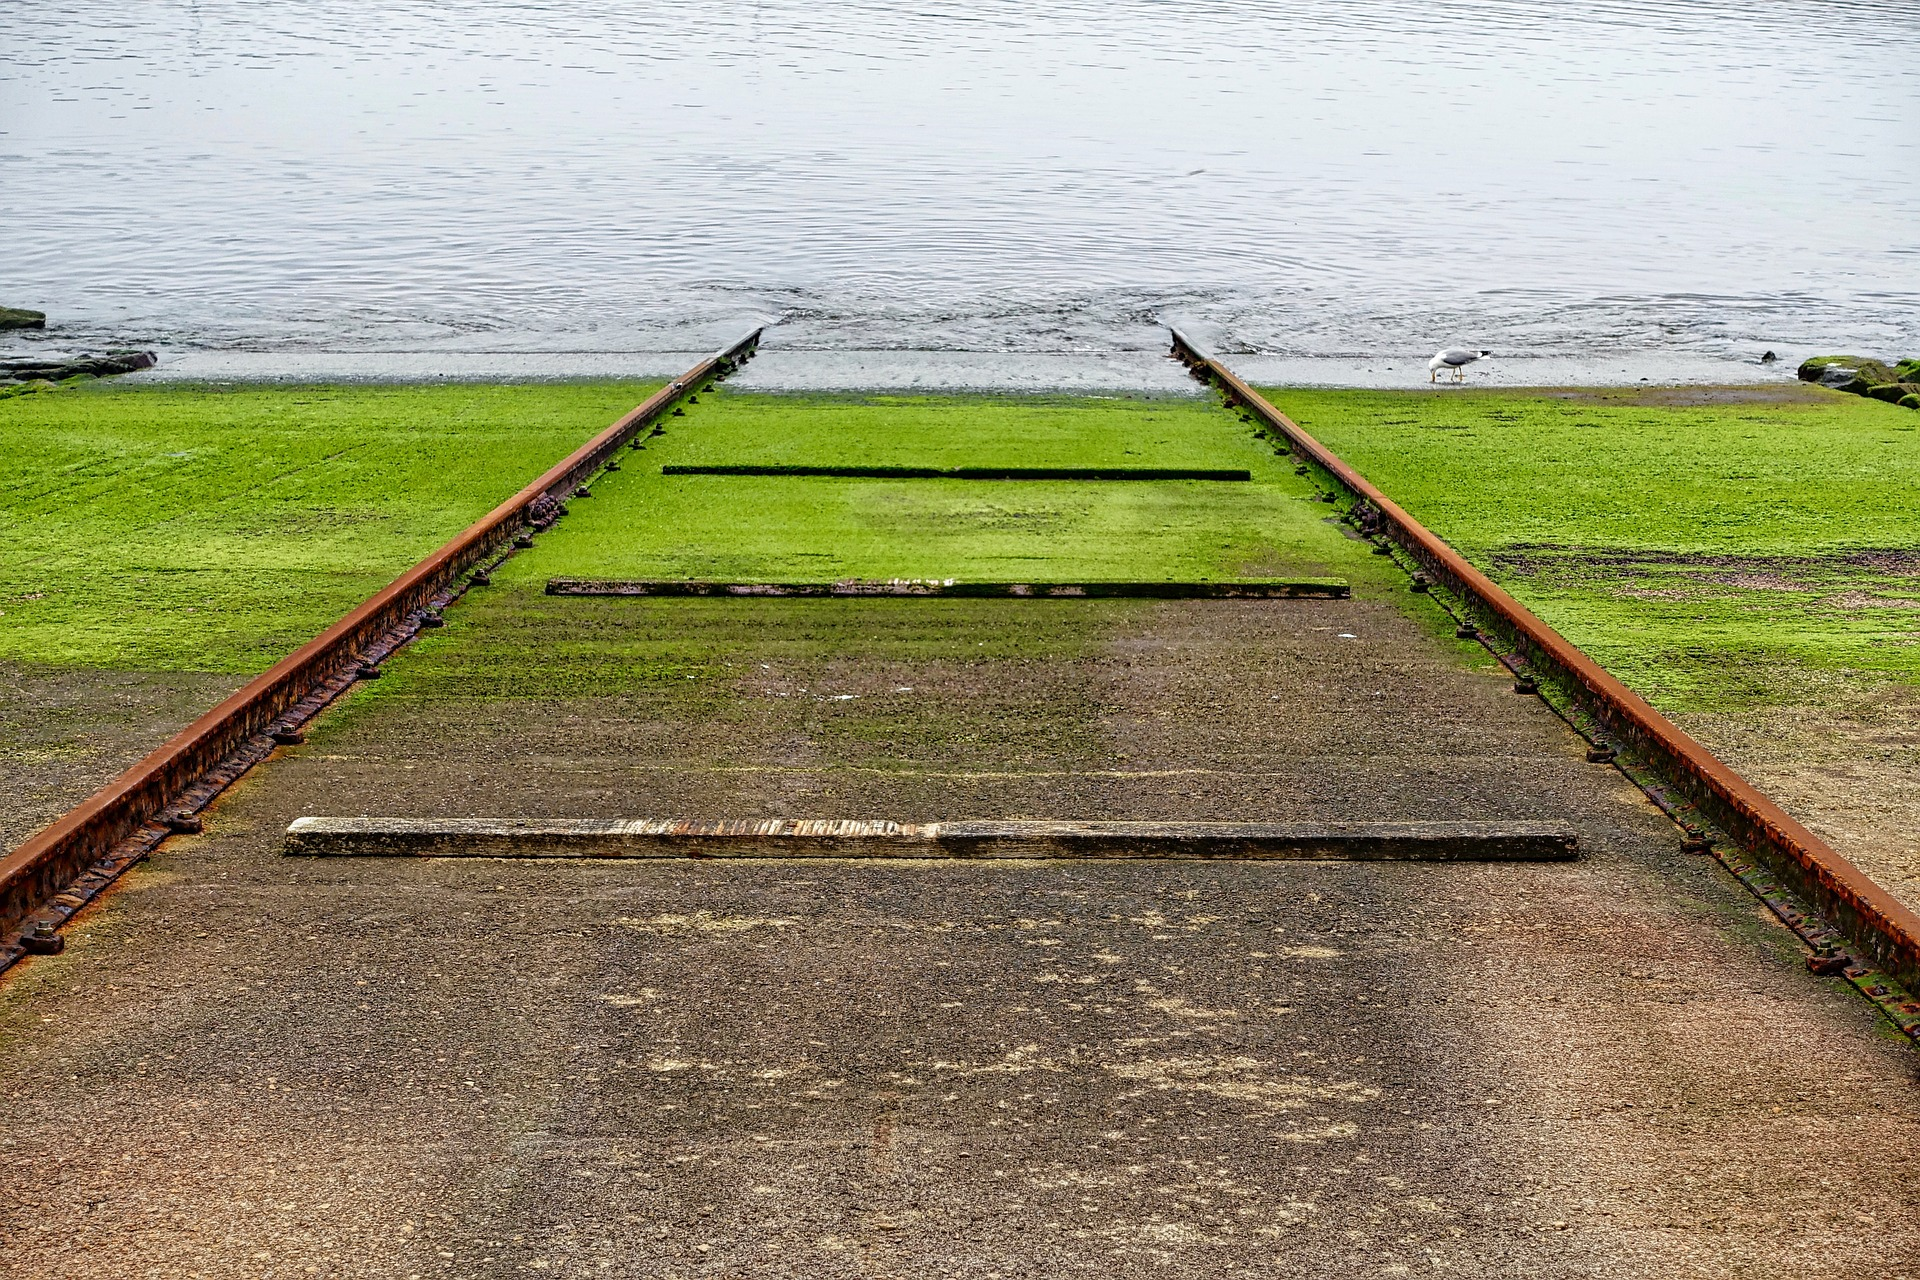 Ramps in poor condition can be dangerous when launching your boat.